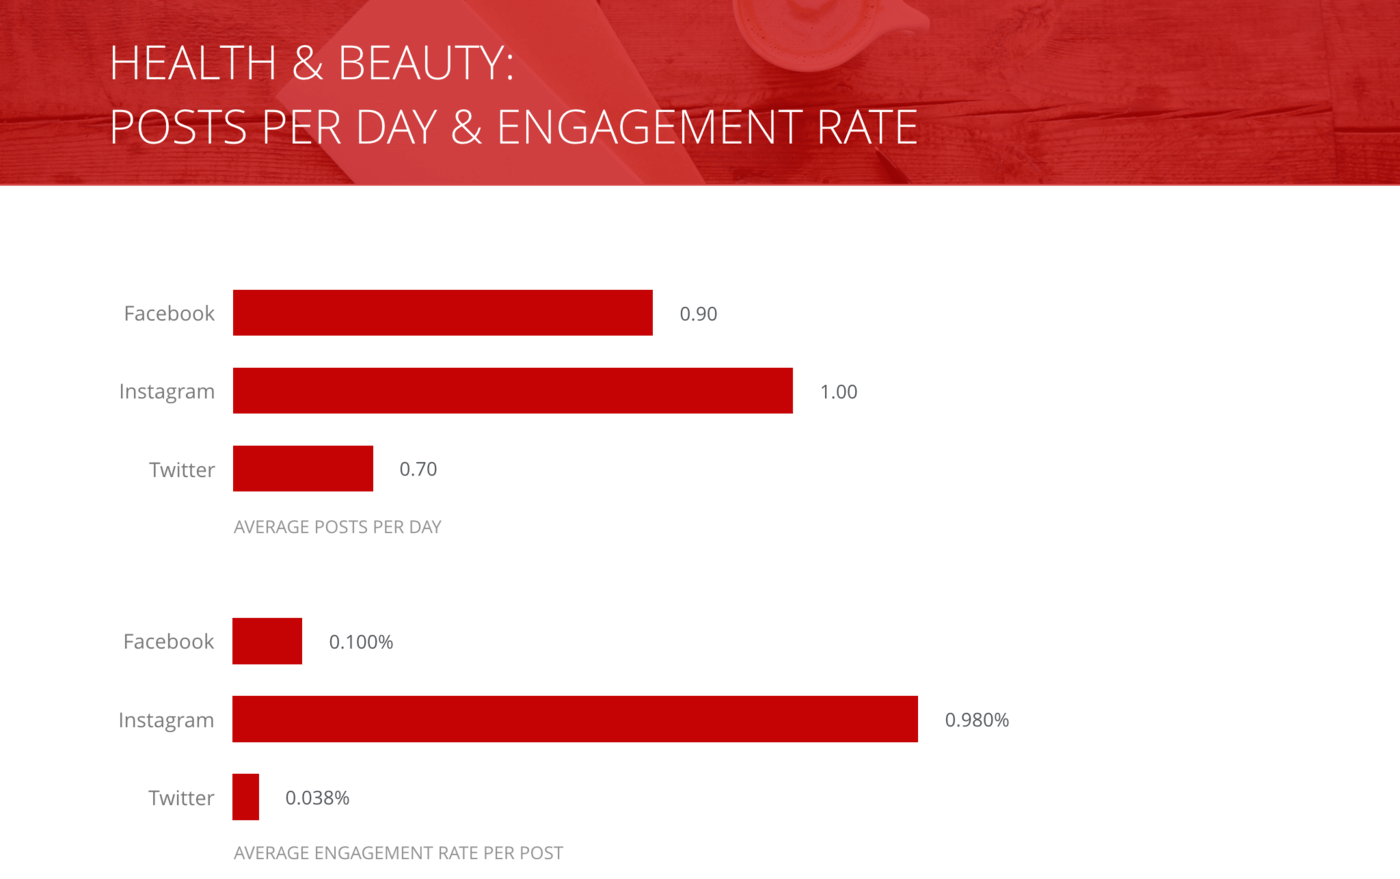 slide for Posts per Day and Engagement Rate per Post, Health & Beauty